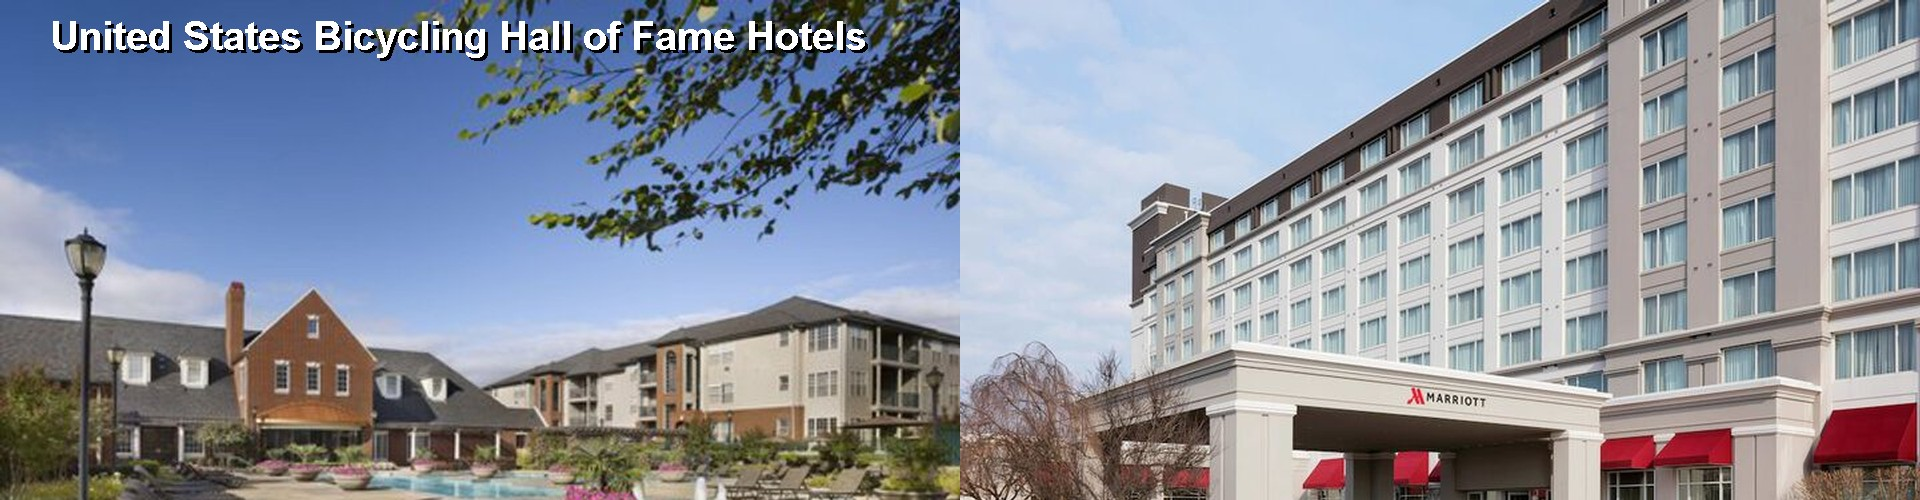 5 Best Hotels near United States Bicycling Hall of Fame